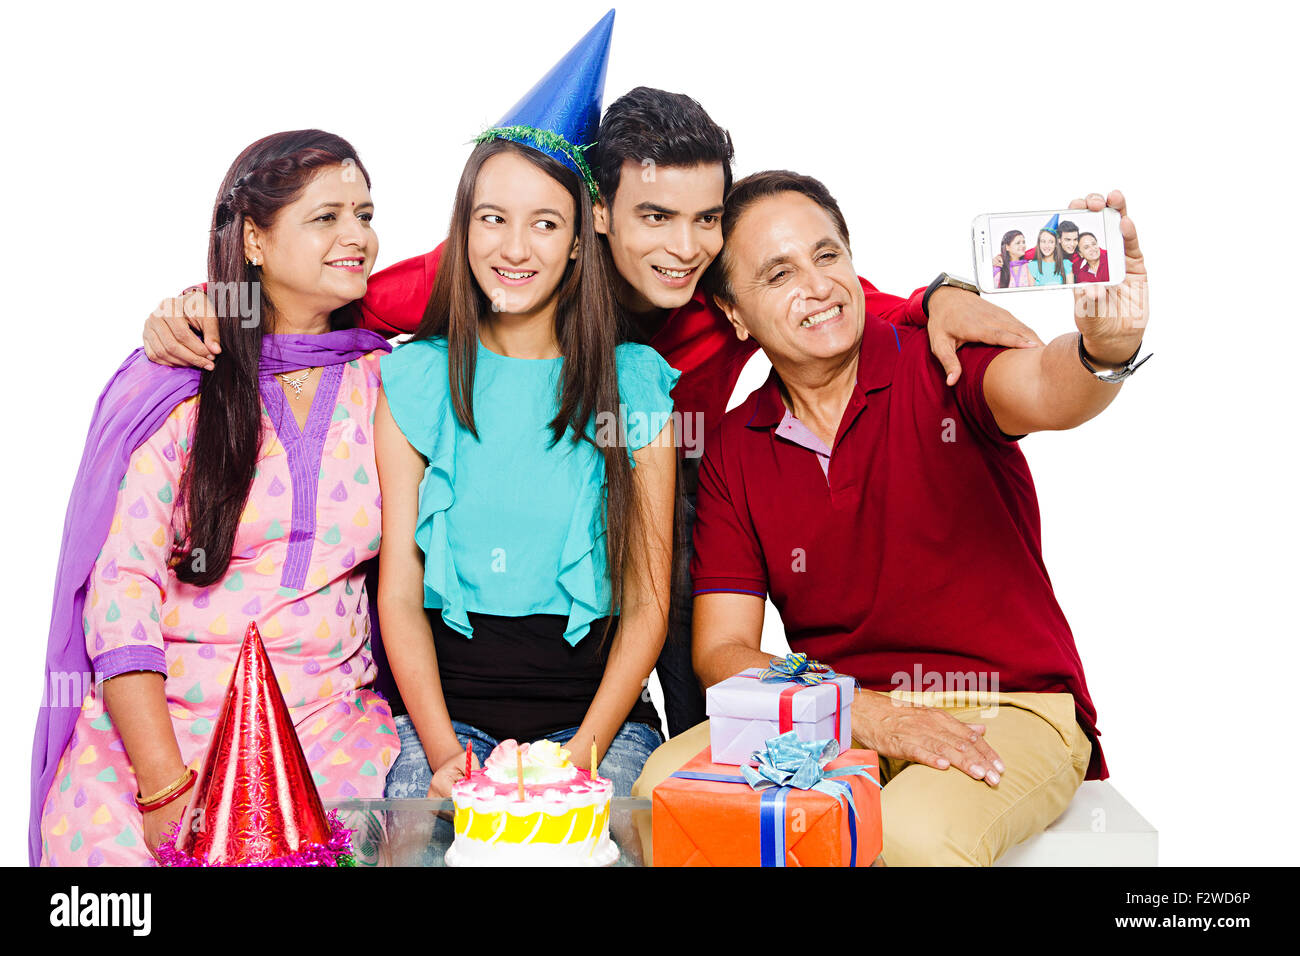 4 indian Presents young daughter and son Birthday Celebration Mobile Phone picture Clicking - Stock Image